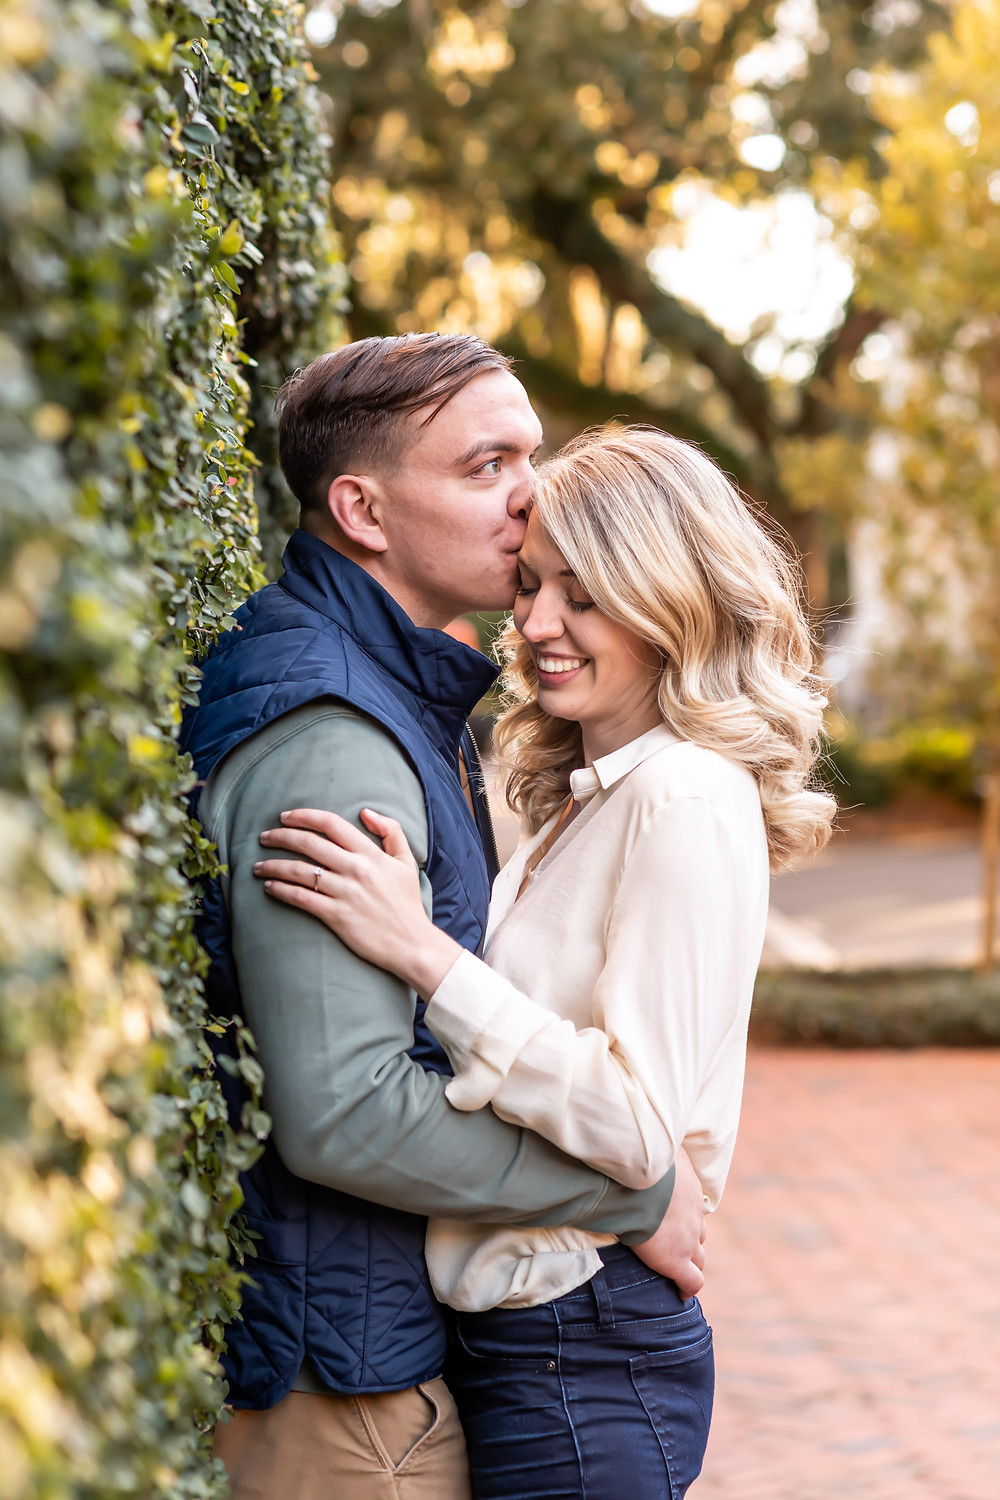 Lindsey and Jeff's engagement session on Jones Street and Forsyth Park in downtown Savannah, Georgia.